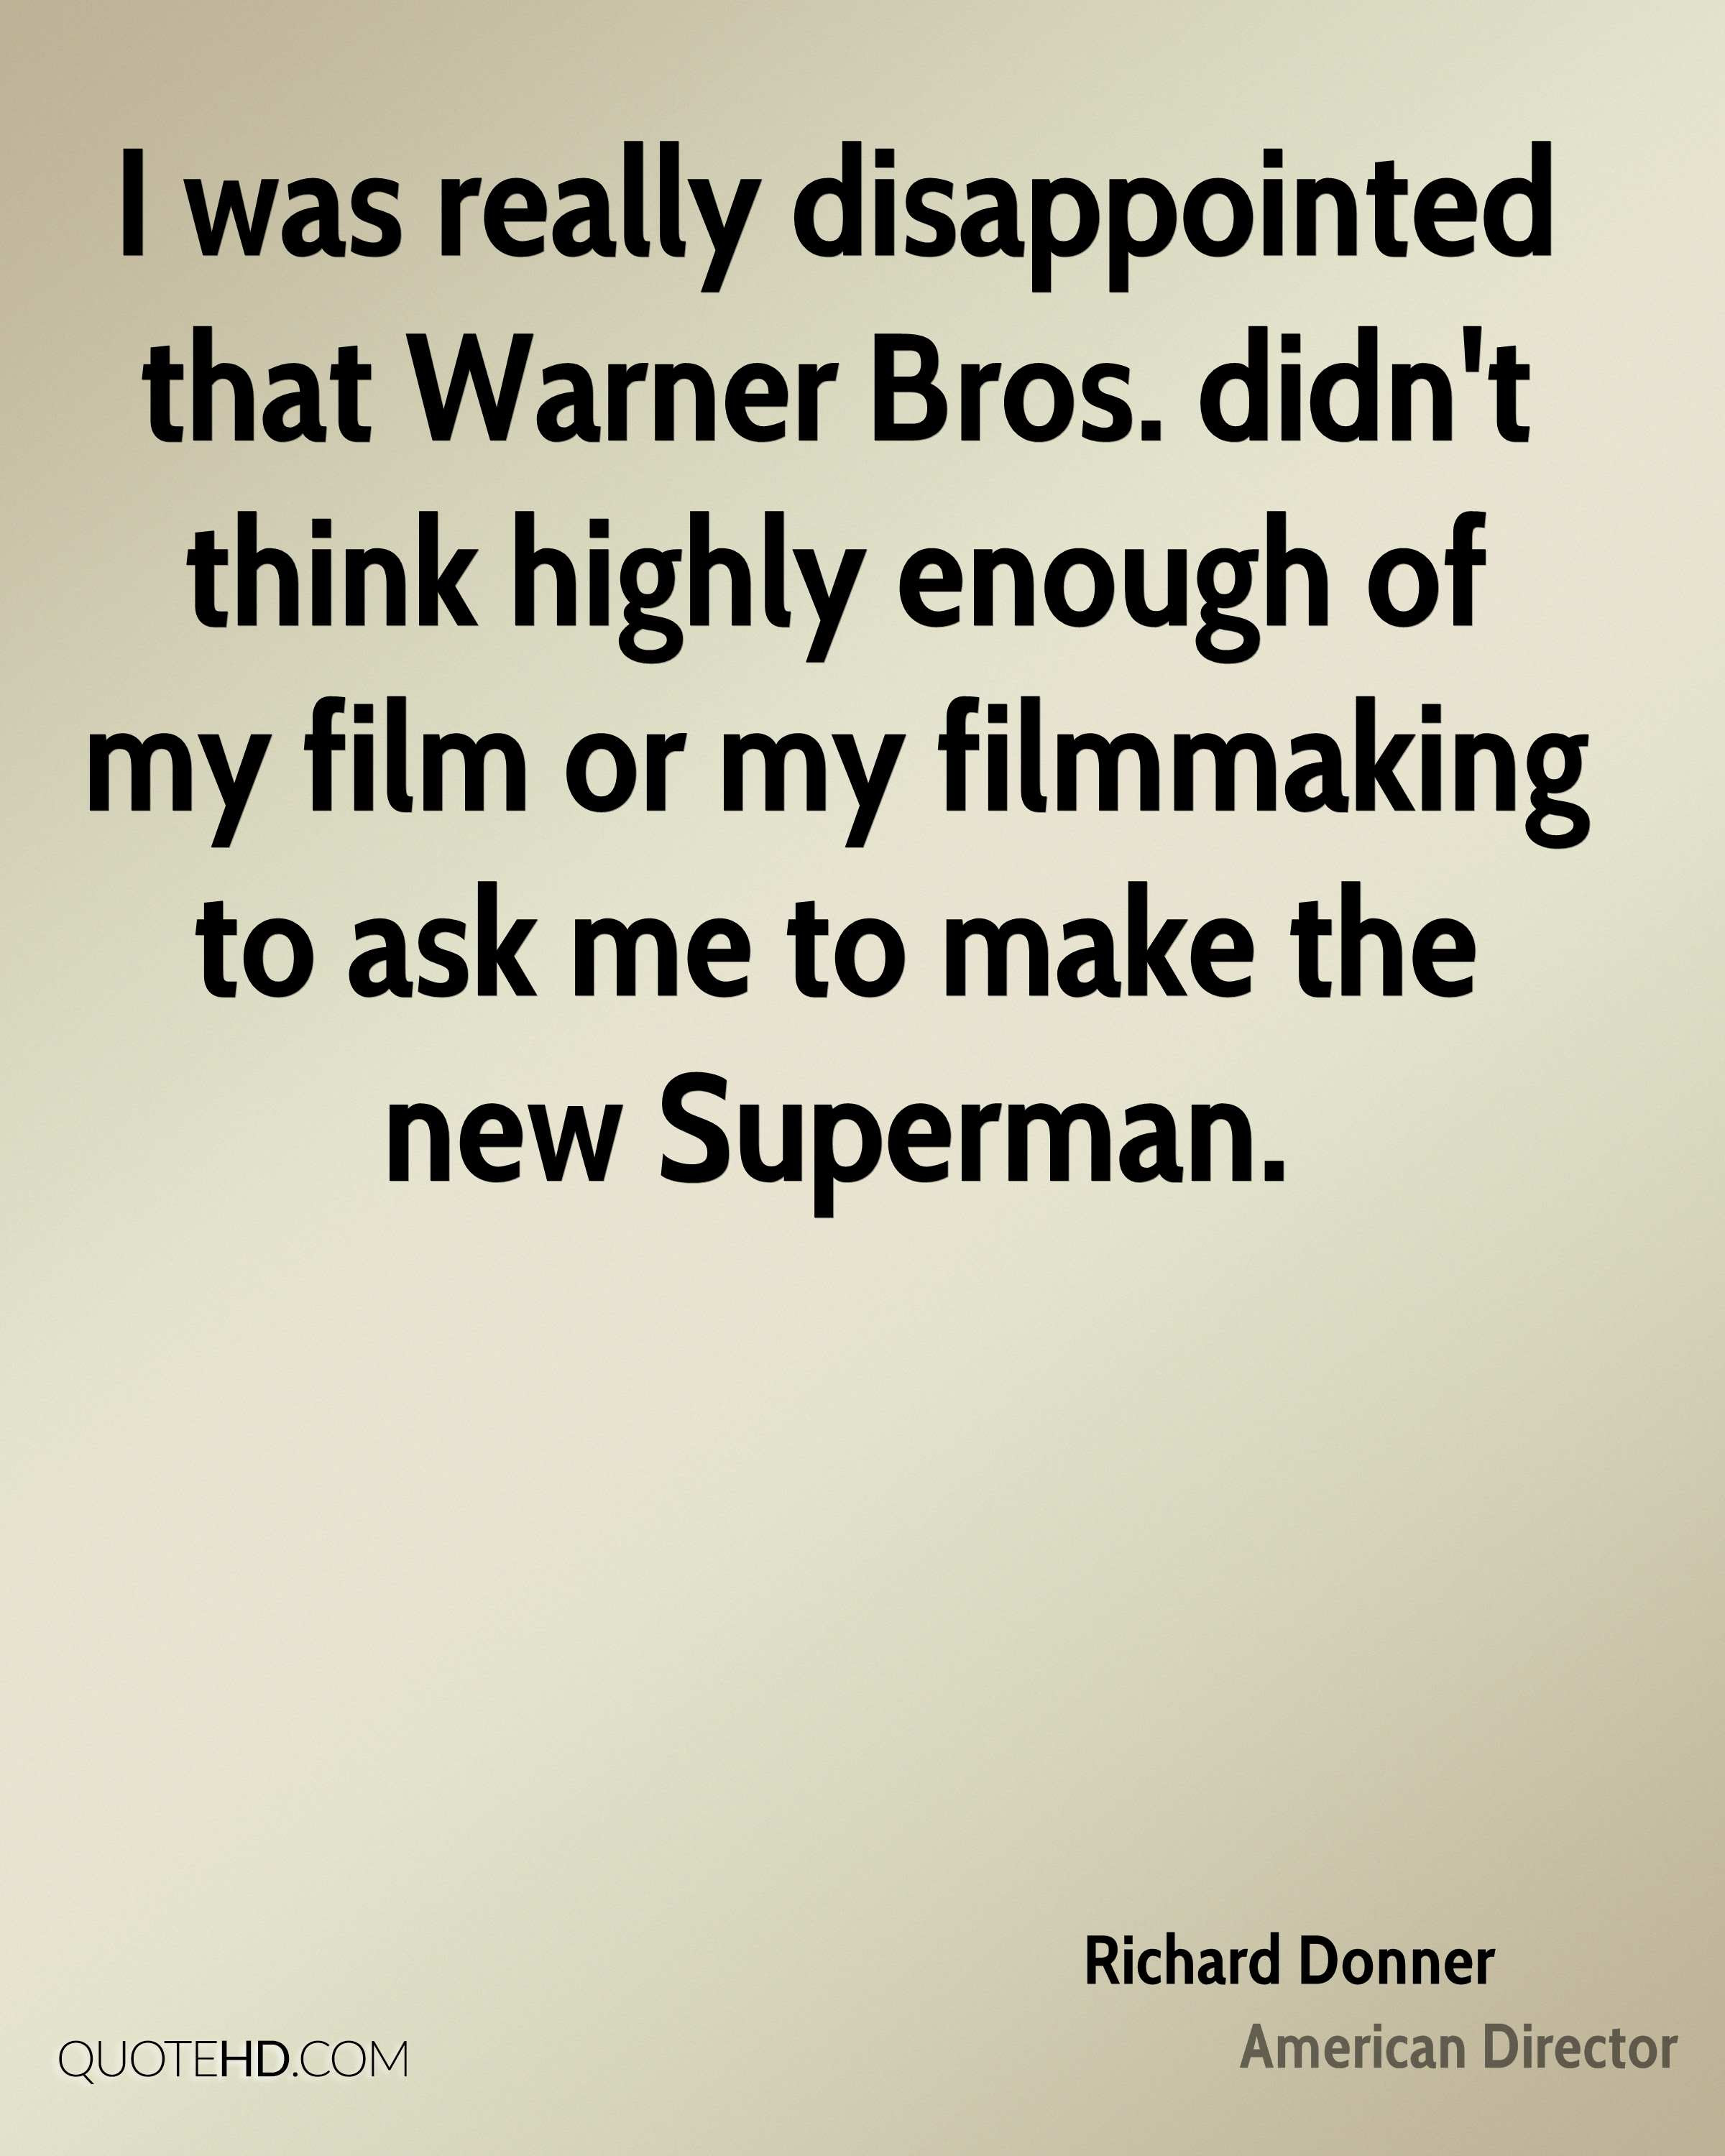 Richard Donner Quotes Quotehd